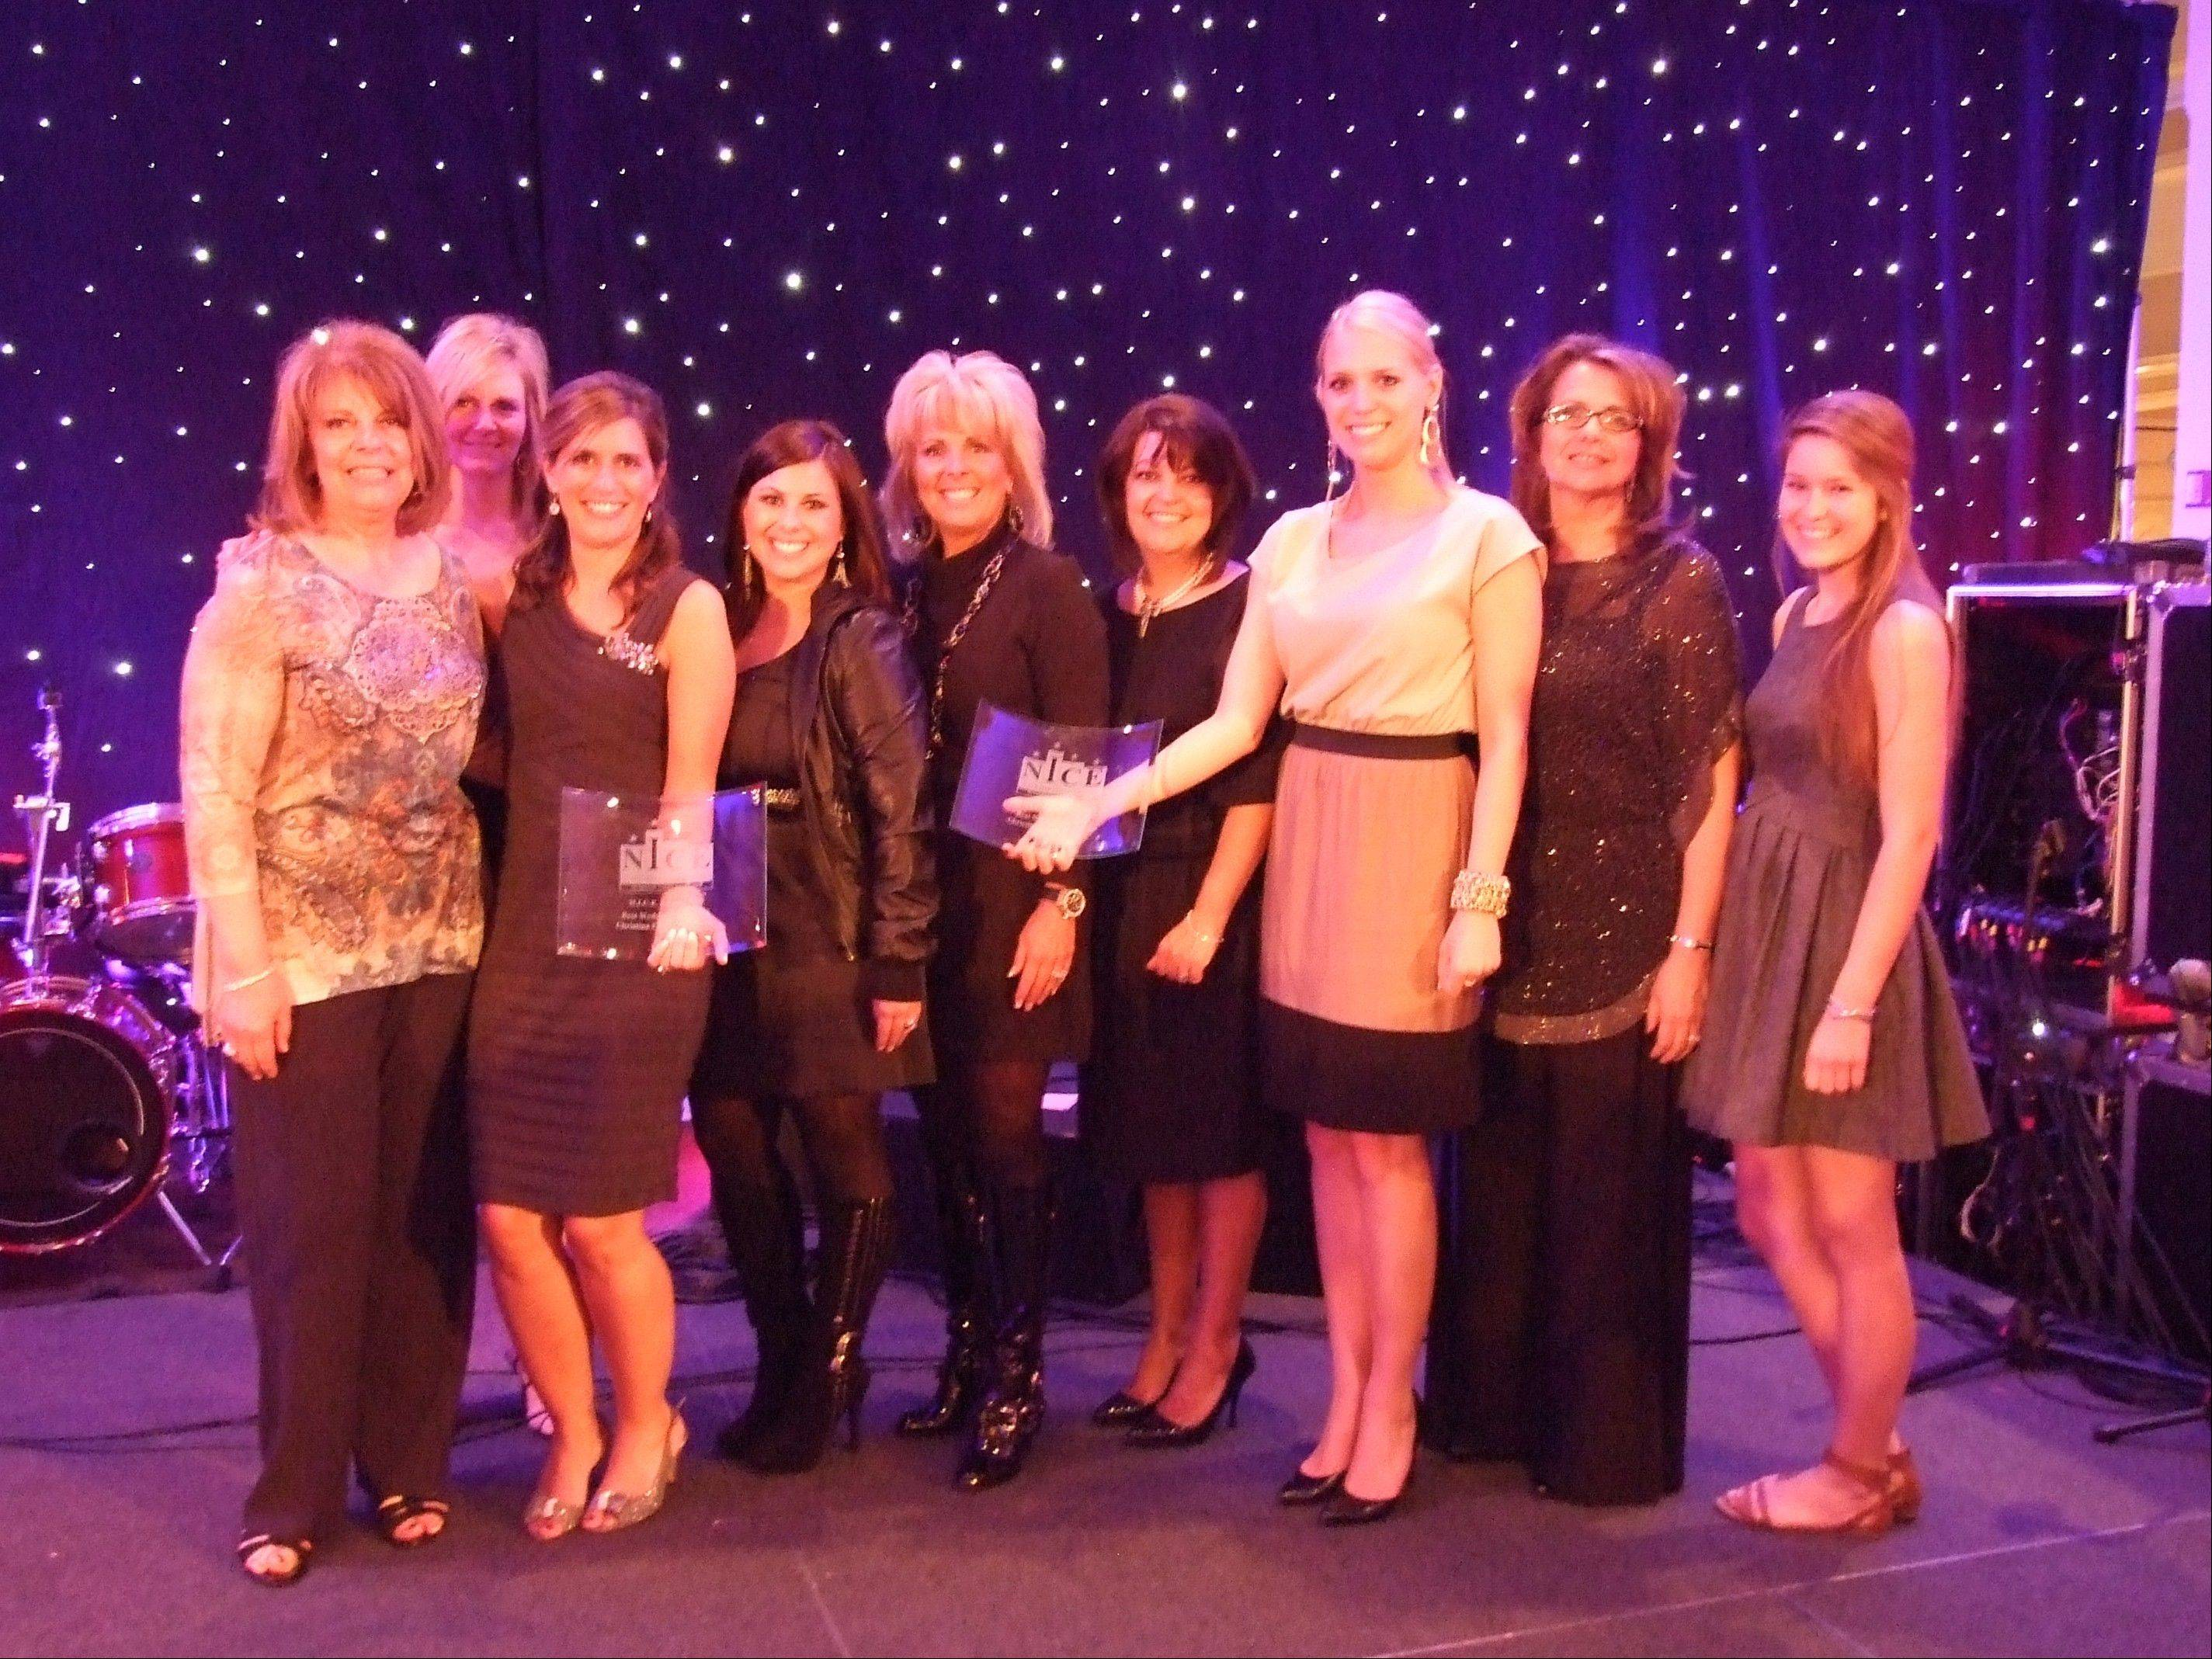 COURTESY OF CHRISTINA CURRIE EVENTS Award winners for the Christina Currie Events Inc. in Inverness include, from left, Char Miller, Beth Bauer, Christina Currie, Britini Wilkens (the bride), Michelle Fawcett (mother of the bride), Susan Buerckholtz, Lauren Debrauwere, Diana Raedel and Jessica Burke.